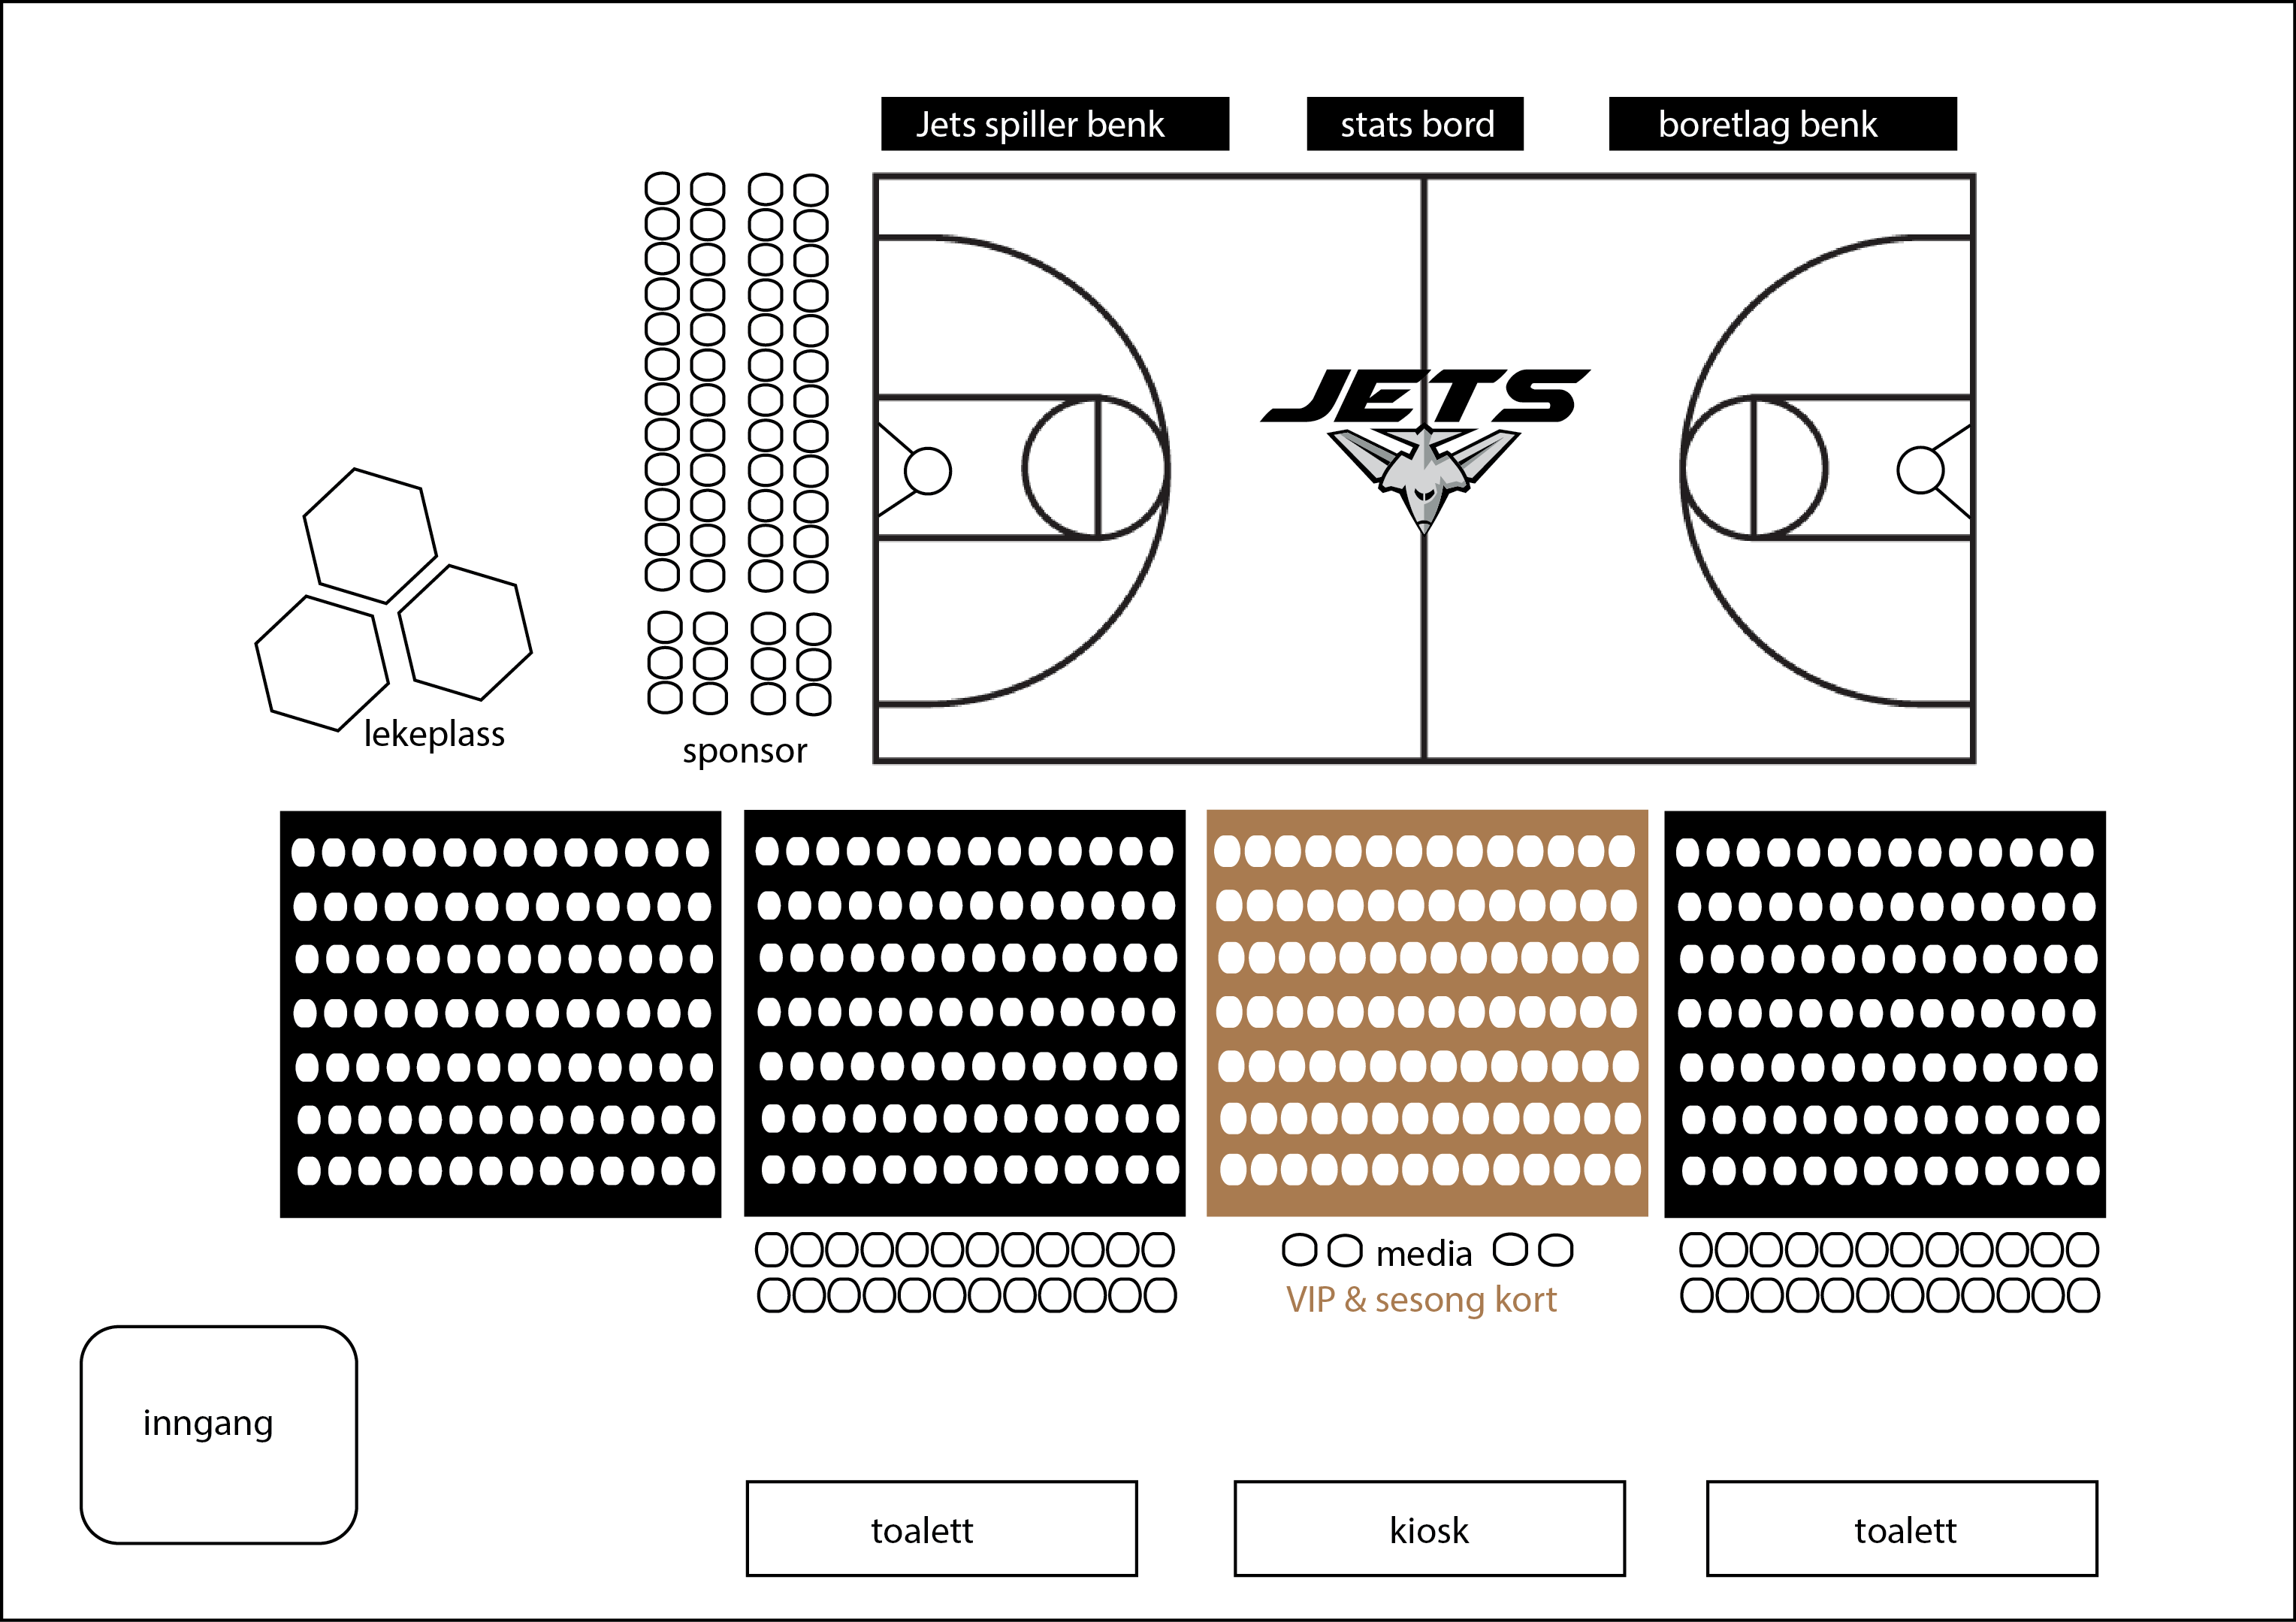 Jets seating map_husebyhall v2